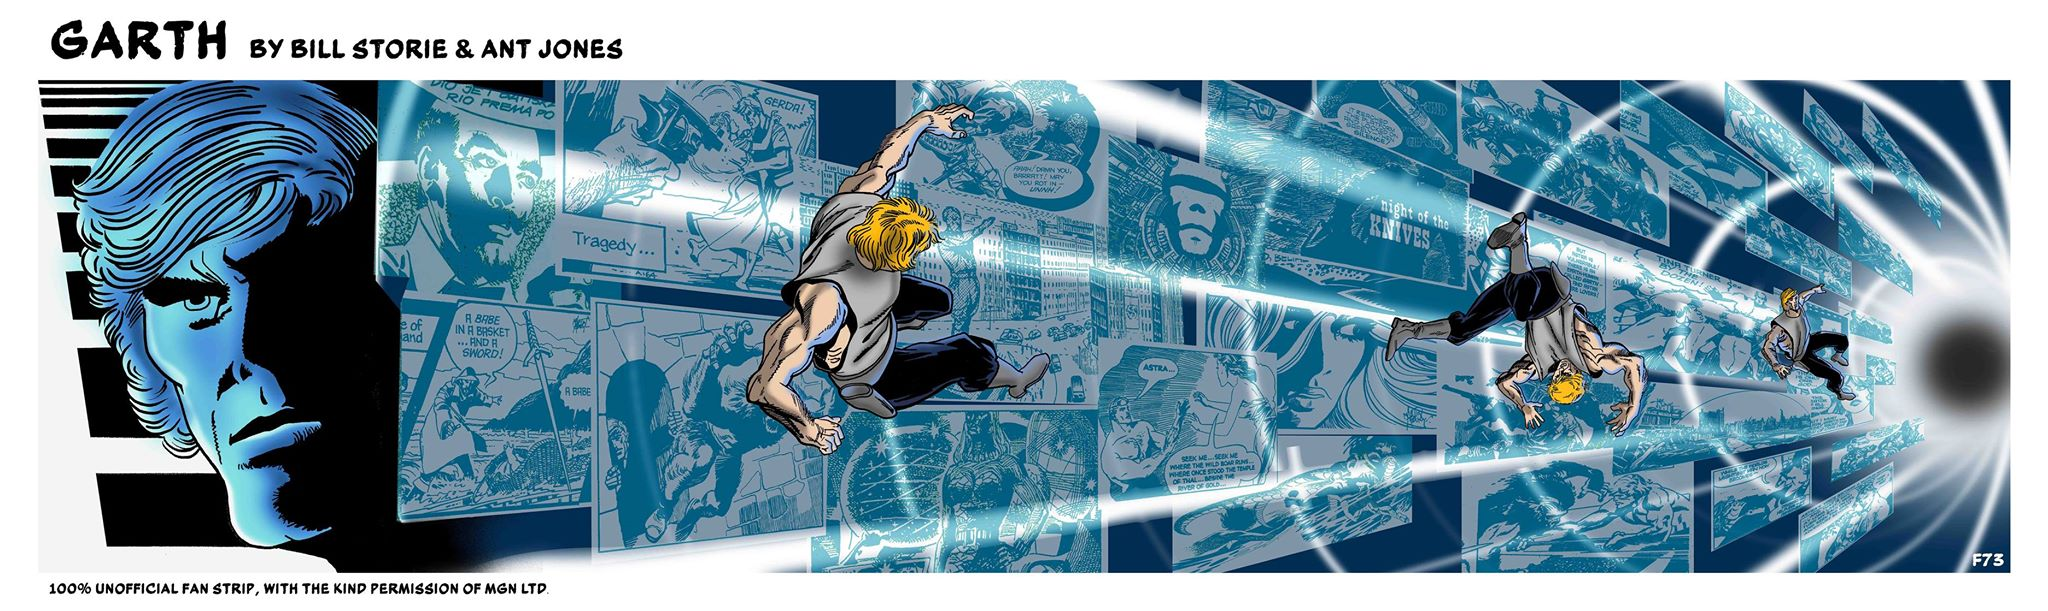 Art for the second online episode of Garth: The Z-File 2: Inferno! by Bill Storie, coloured by Ant Jones